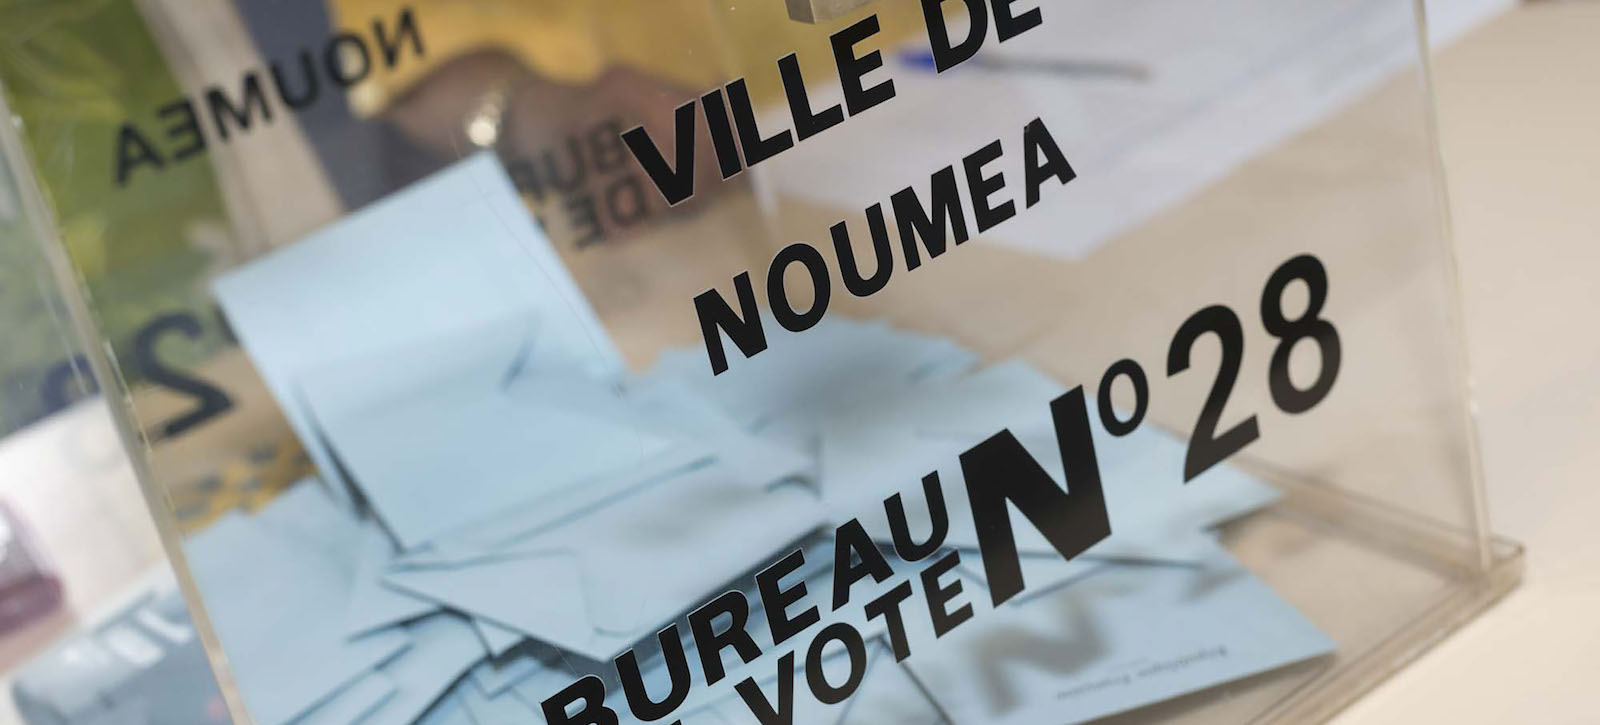 A ballot box in Noumea, New Caledonia, during voting in the 2017 French legislative elections (Photo: Fred Payet via Getty)